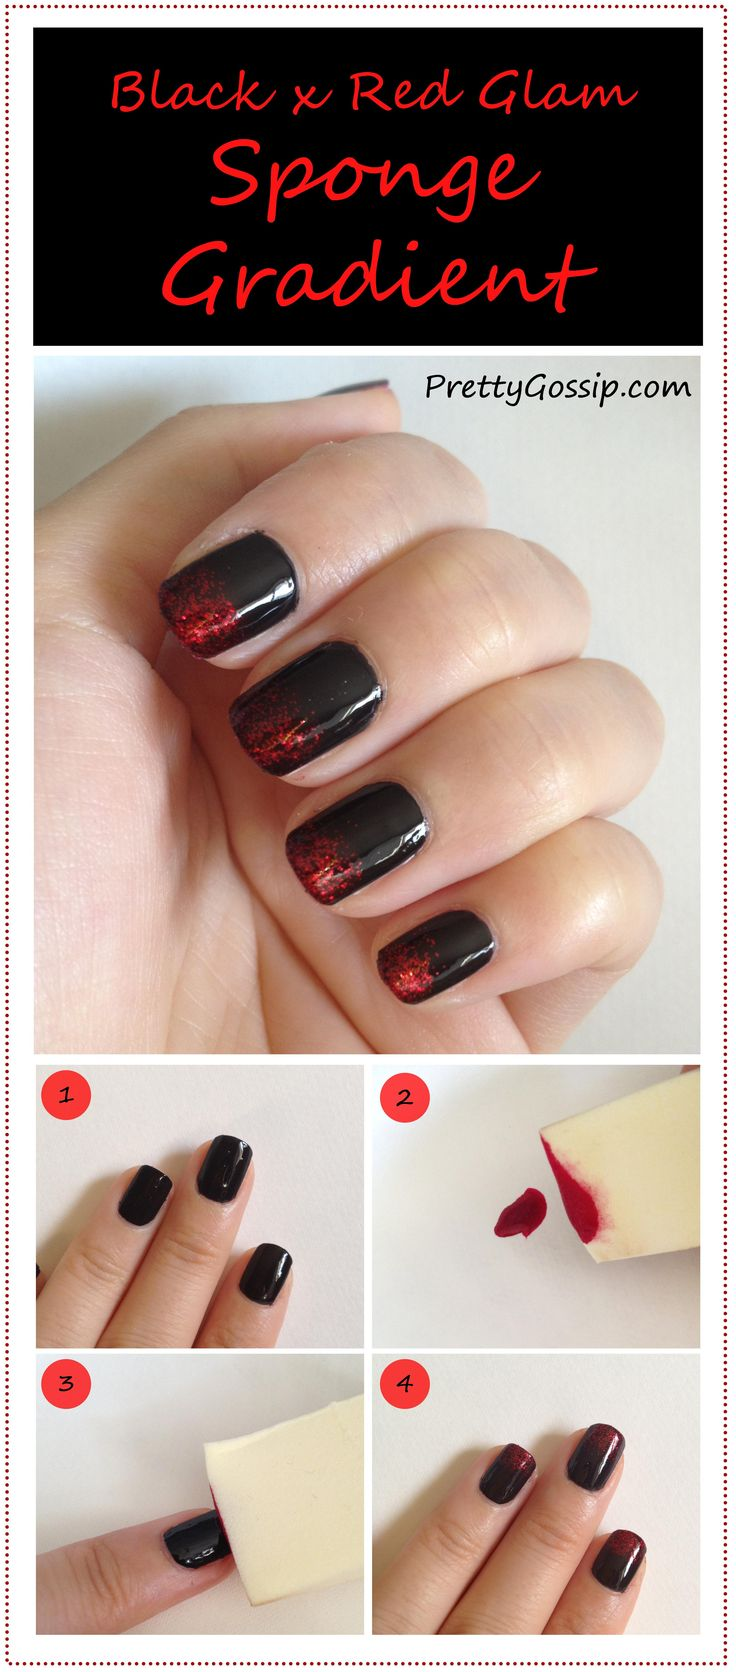 EASY {Sponge Gradient Nails} Tutorial + Helpful Tips on http://prettygossip.com/2012/09/17/black-x-red-nails-sponge-gradient-nail-tutorial/#